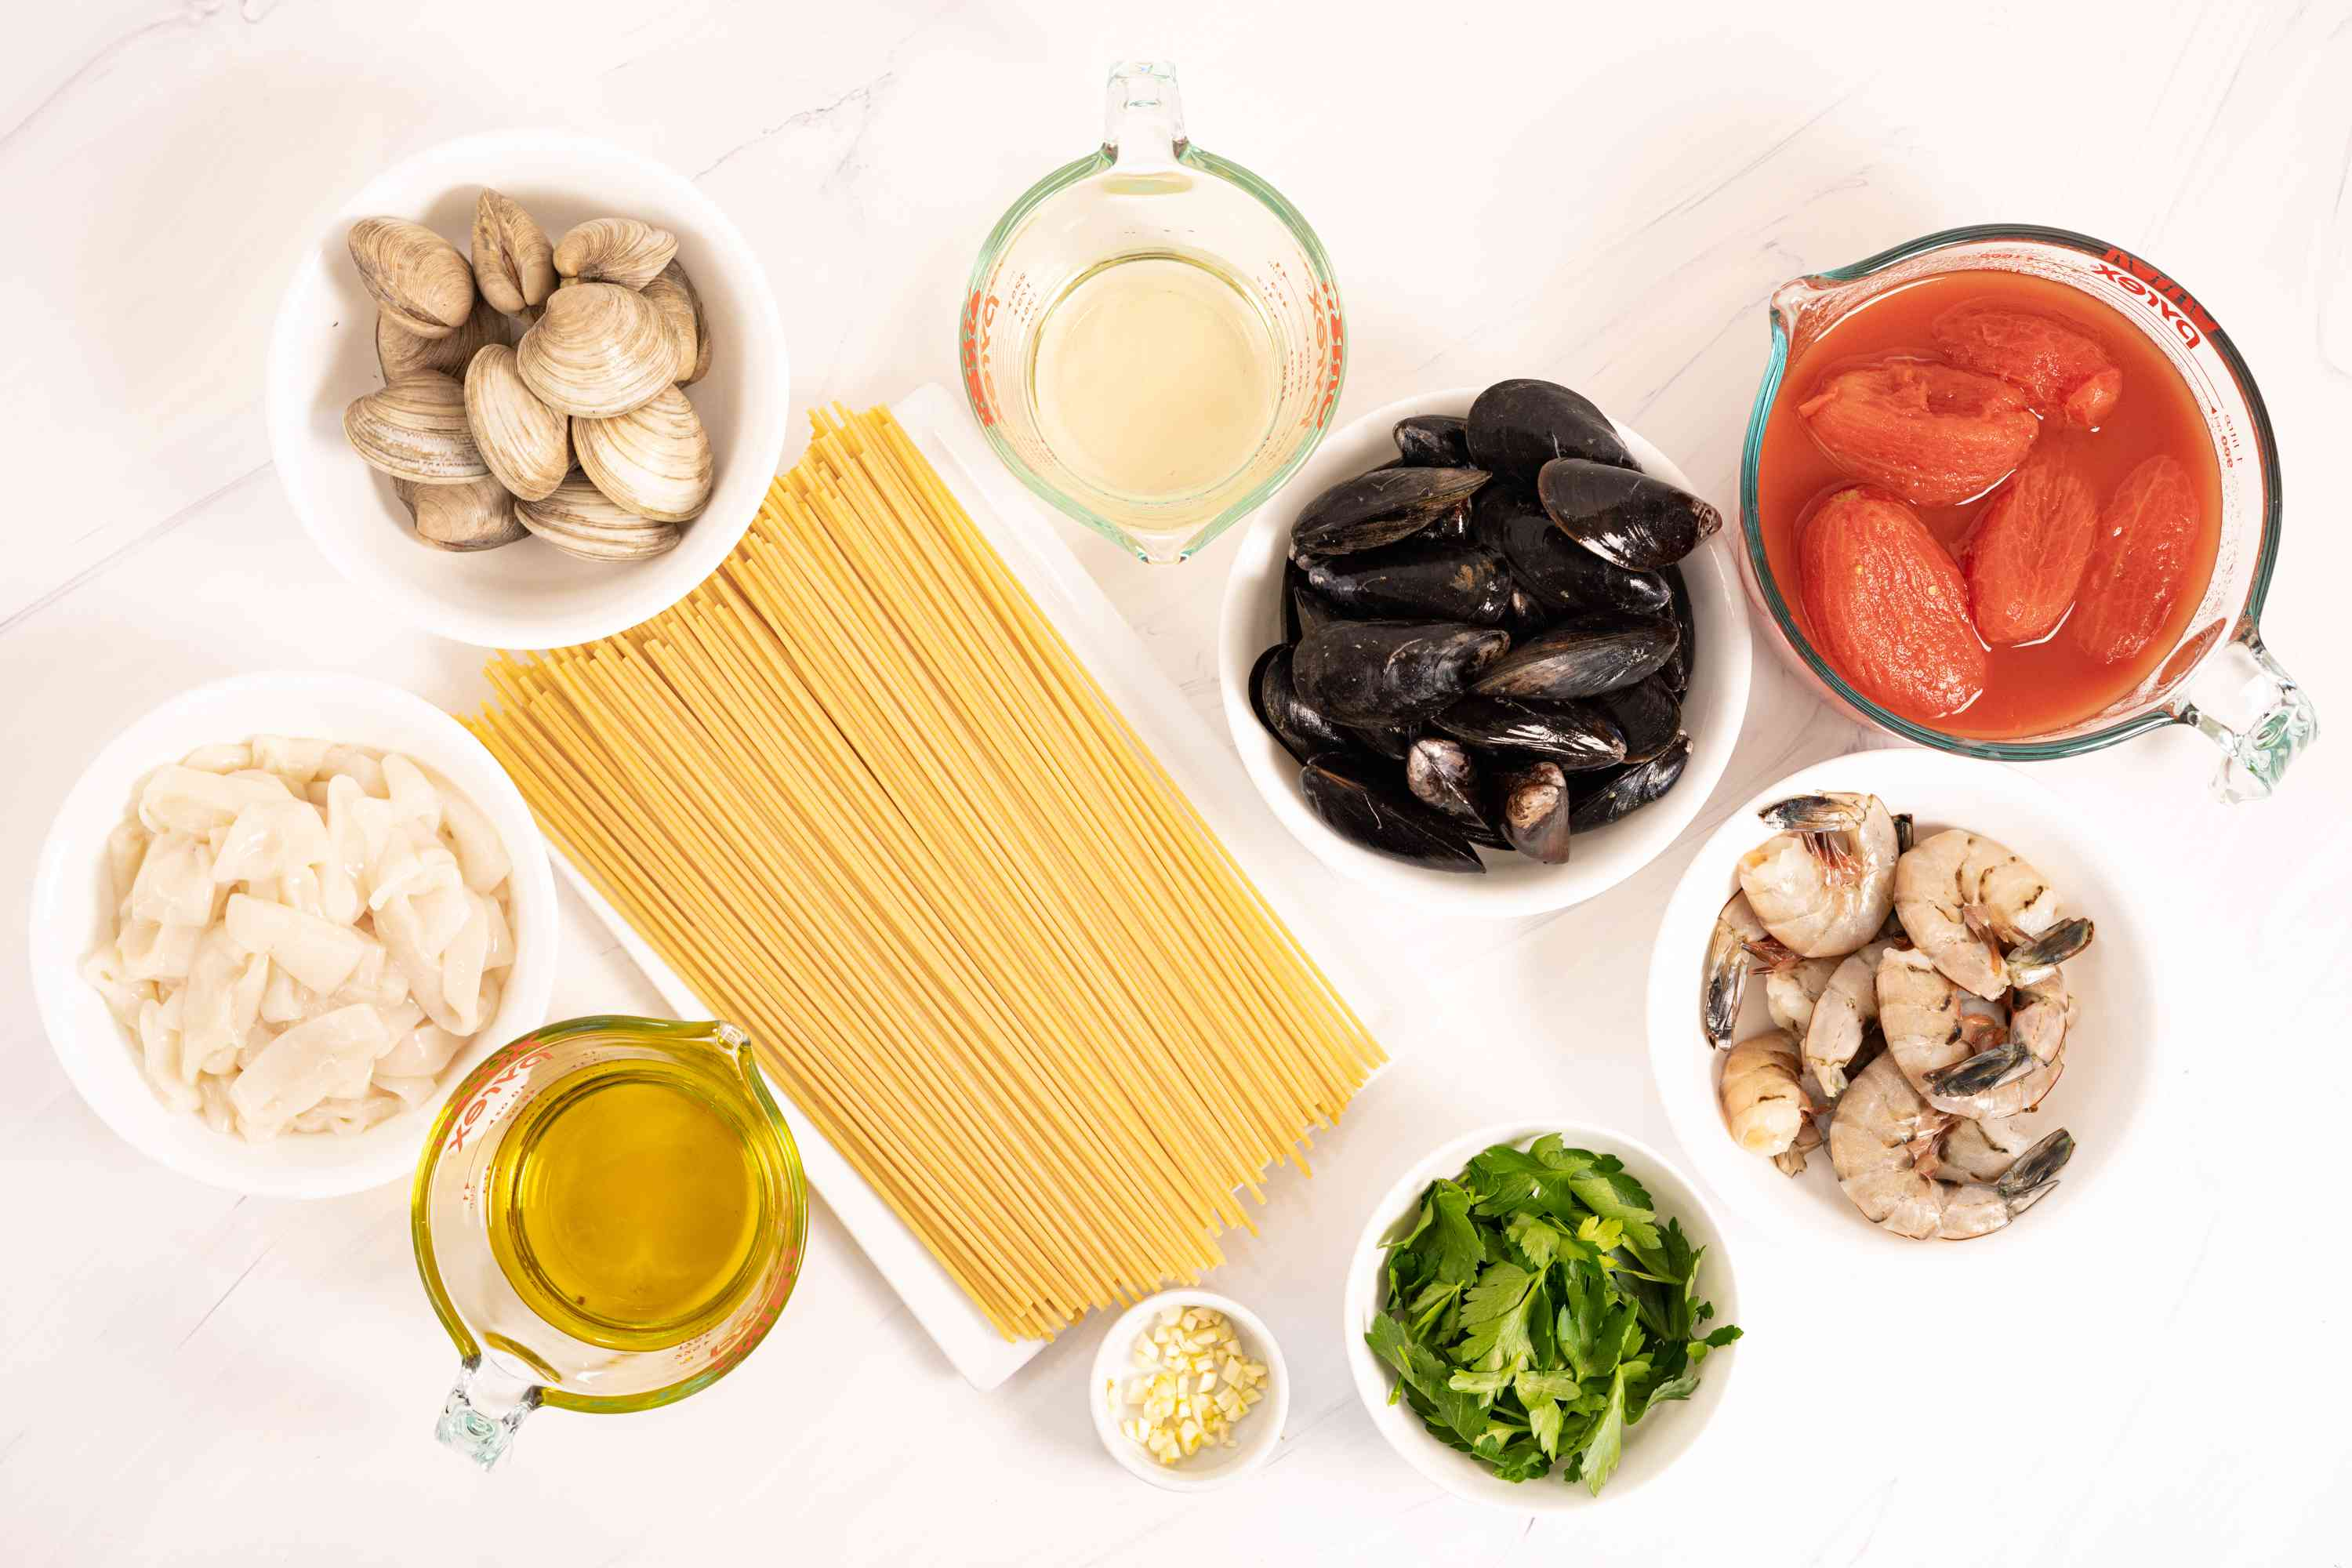 Pasta With Mixed Seafood (Pasta alla Posillipo) ingredients